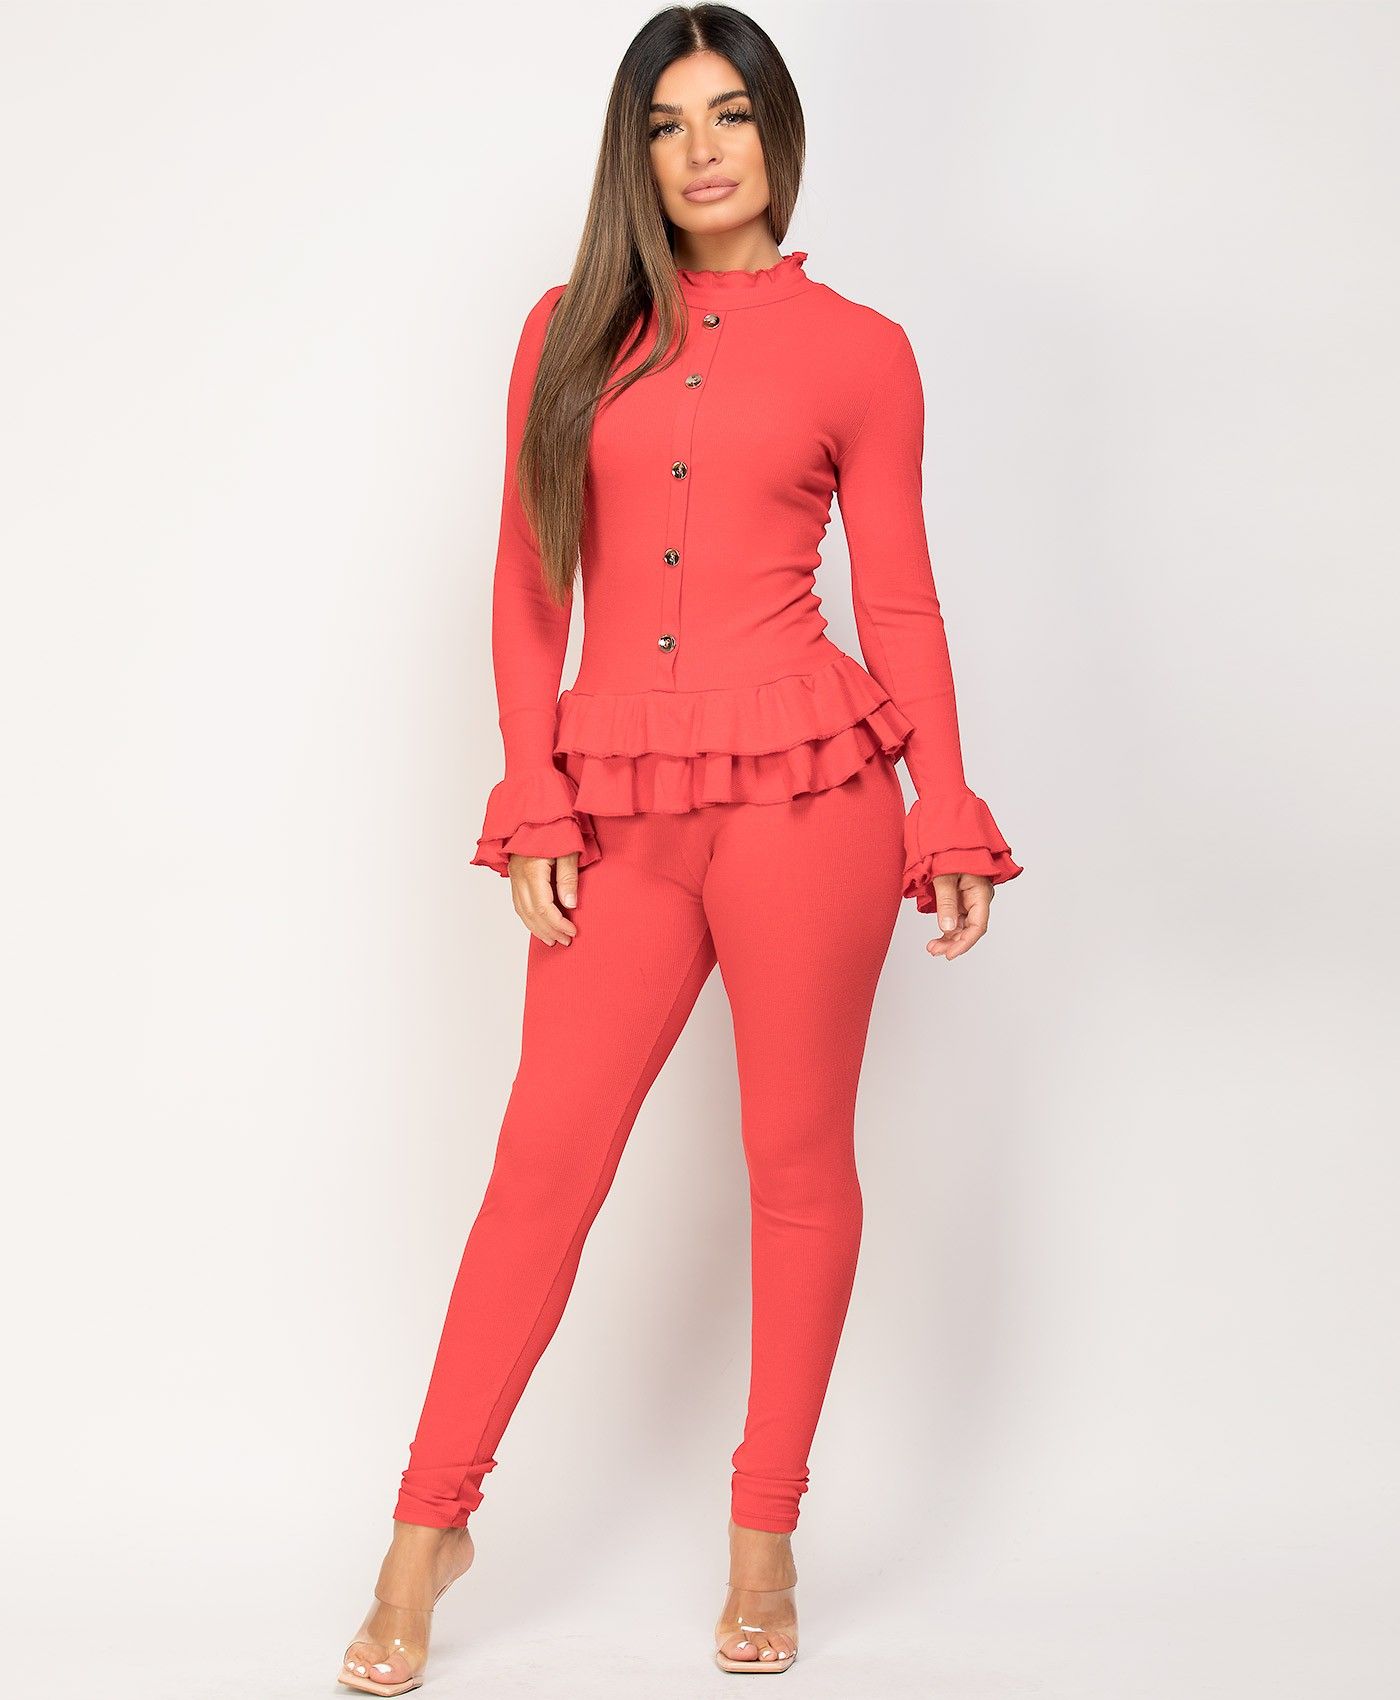 Red-Frill-Gold-Button-Ribbed-Loungewear-Set-4